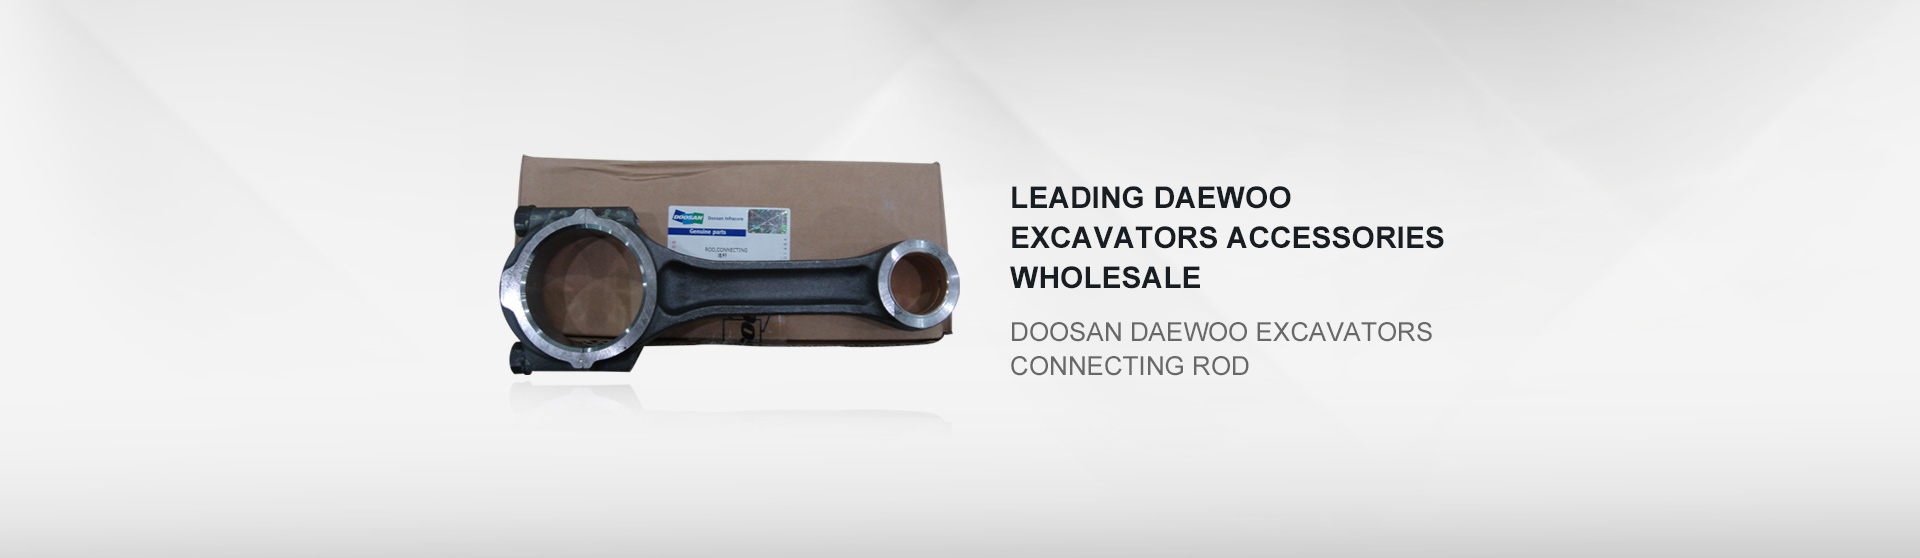 Doosan daewoo excavators connecting rod